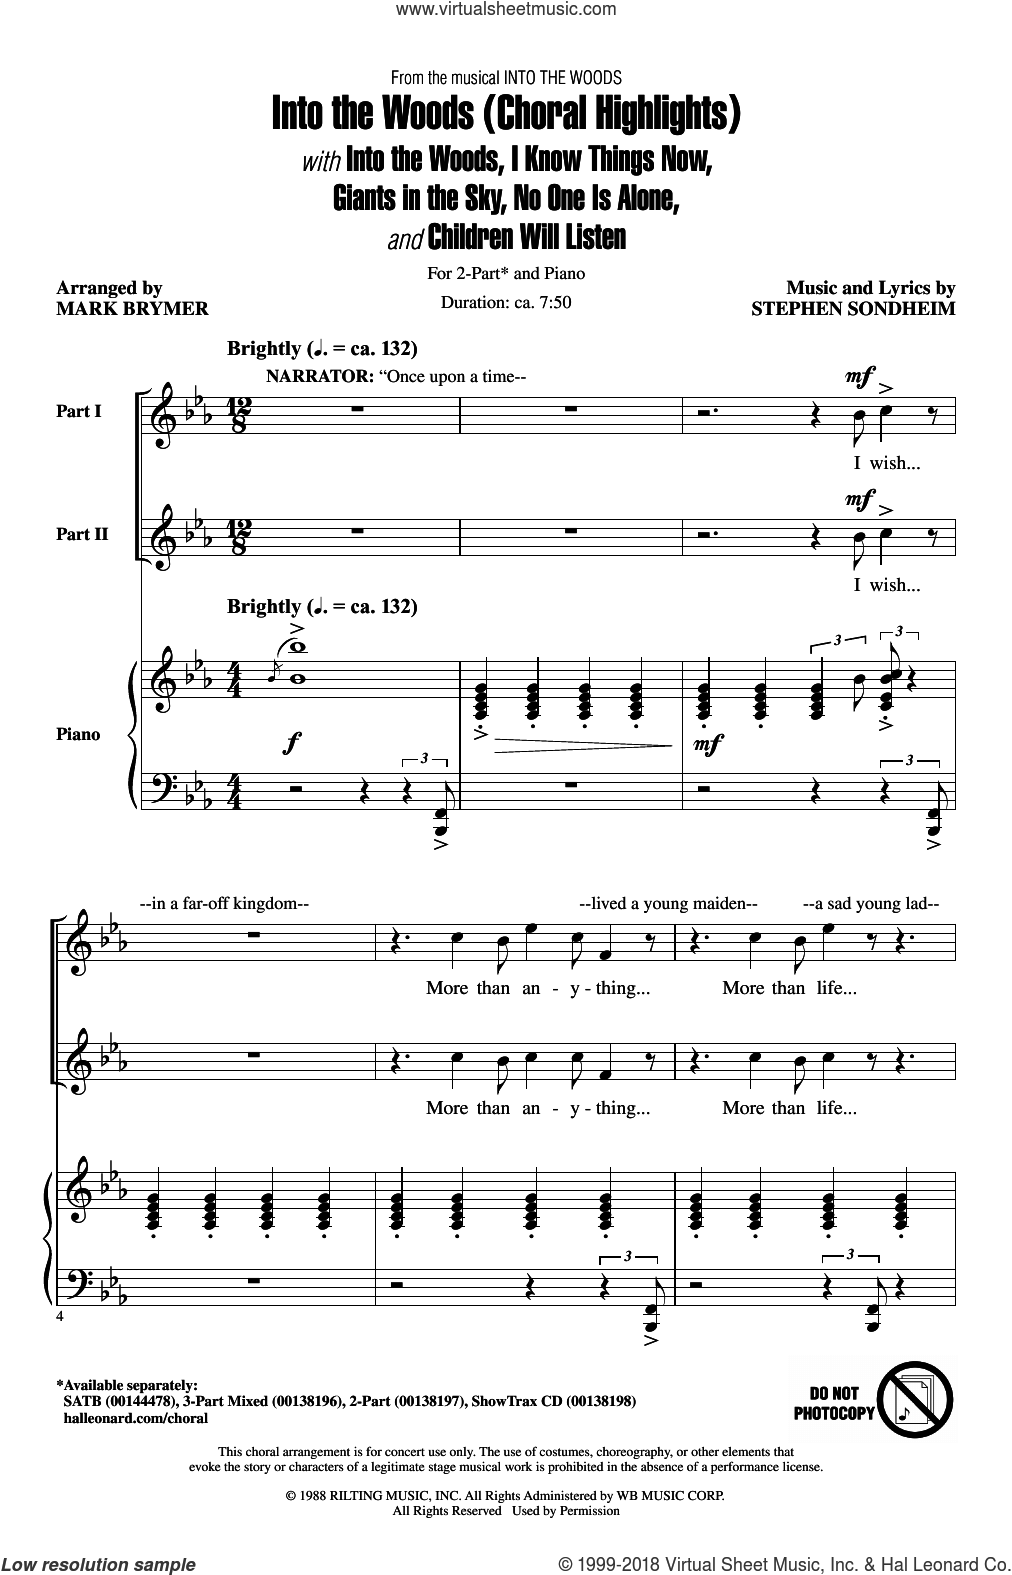 Into The Woods (Choral Highlights) sheet music for choir (2-Part) by Stephen Sondheim and Mark Brymer, intermediate duet